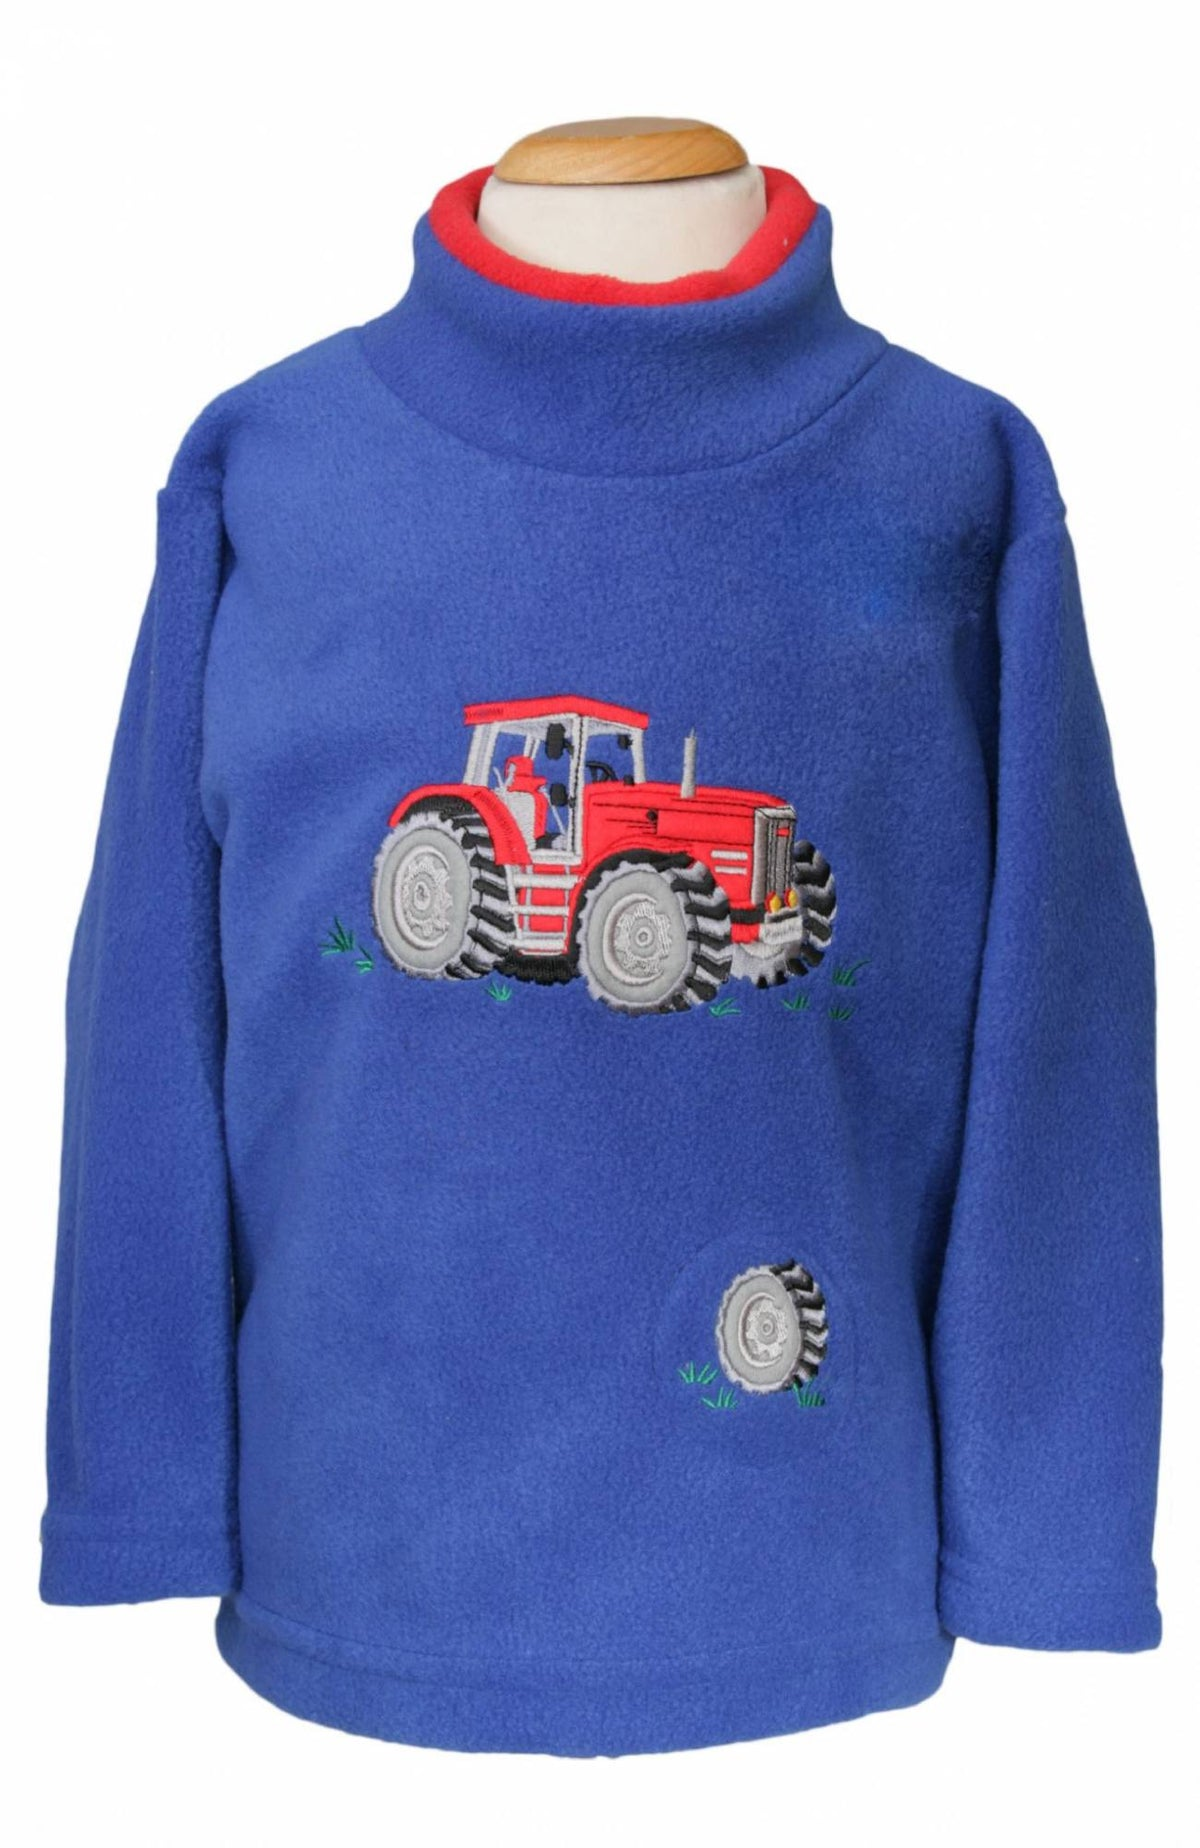 Childrens Tractor Noise Fleece Top